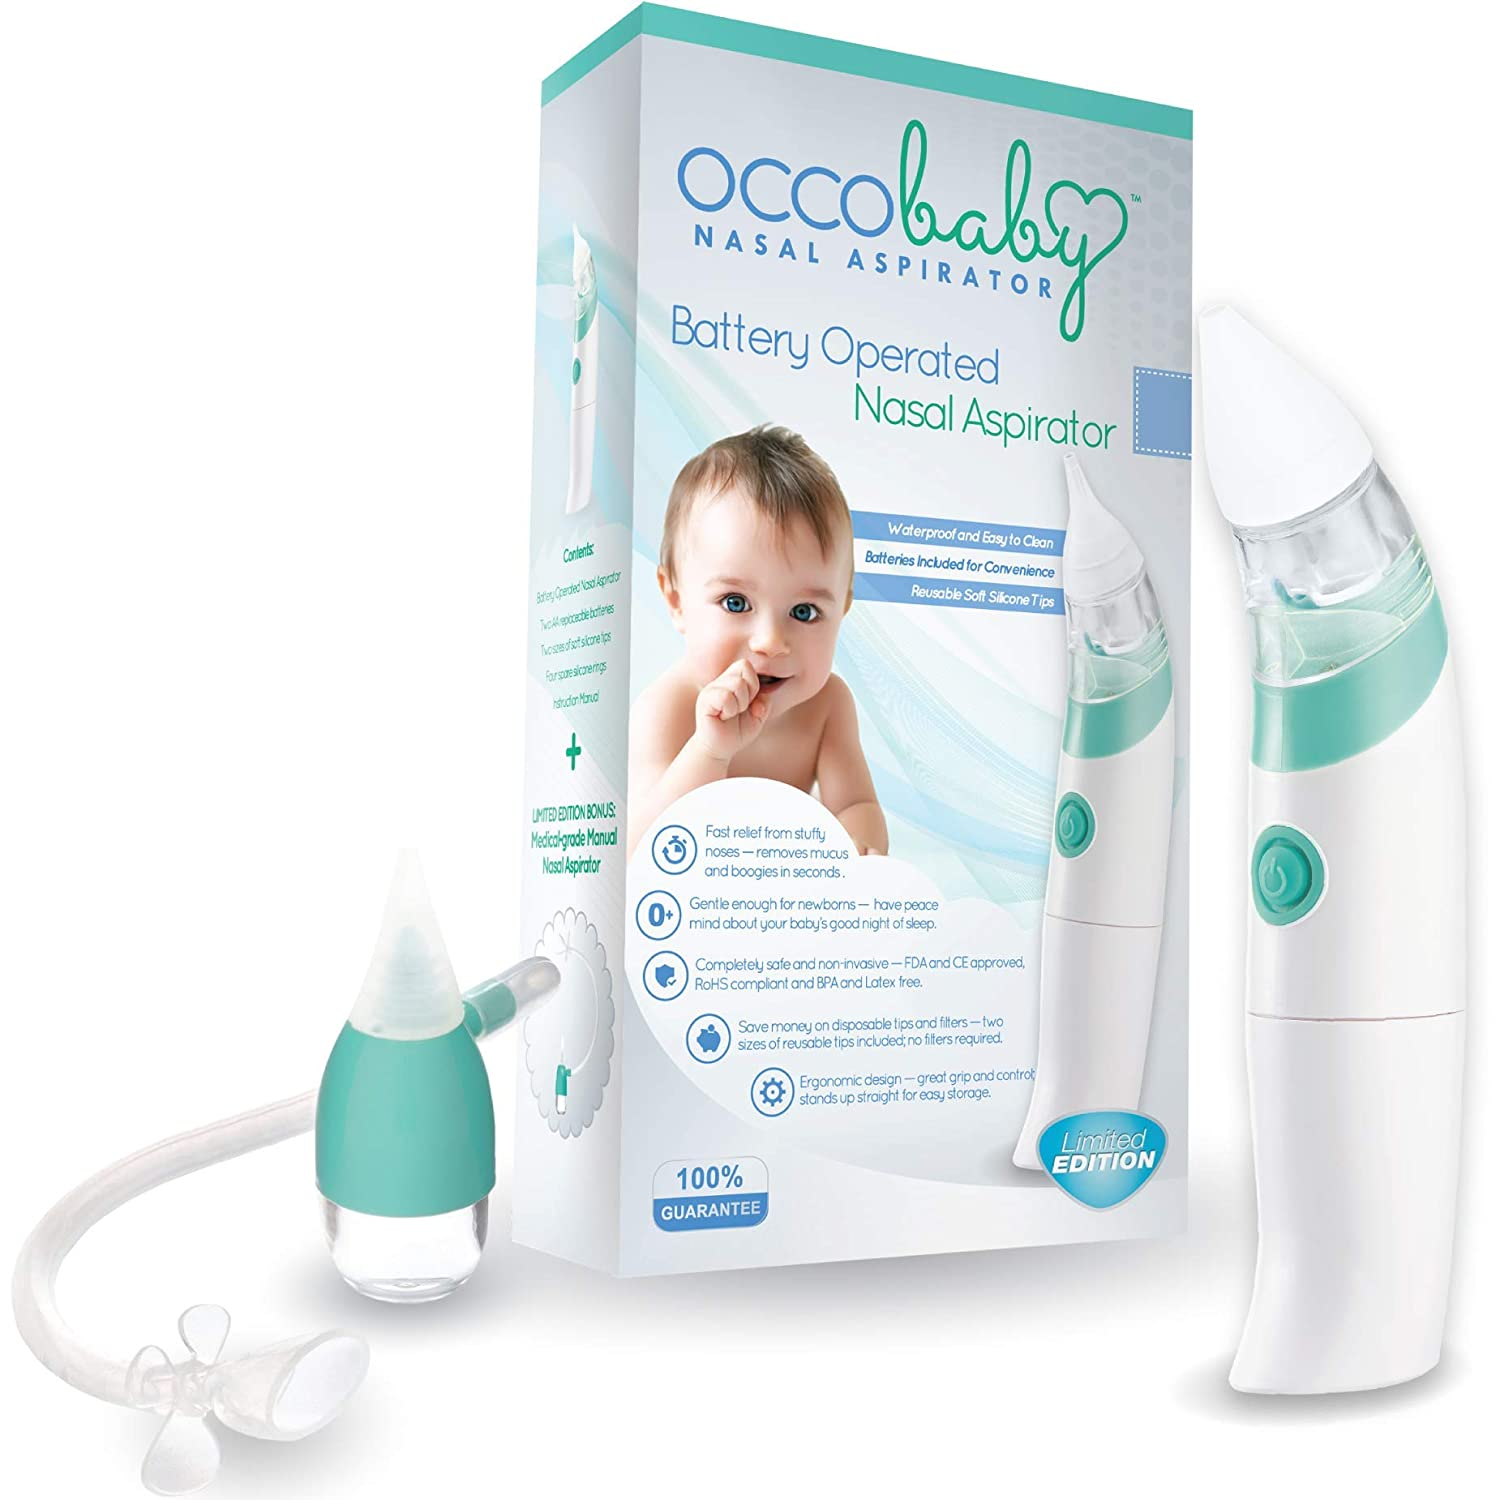 Amazon Com Occobaby Baby Nasal Aspirator Safe Hygienic And Quick Battery Operated Nose Cleaner With 3 Sizes Of Nose Tips Includes Bonus Manual Snot Sucker For Newborns And Toddlers Limited Edition Baby